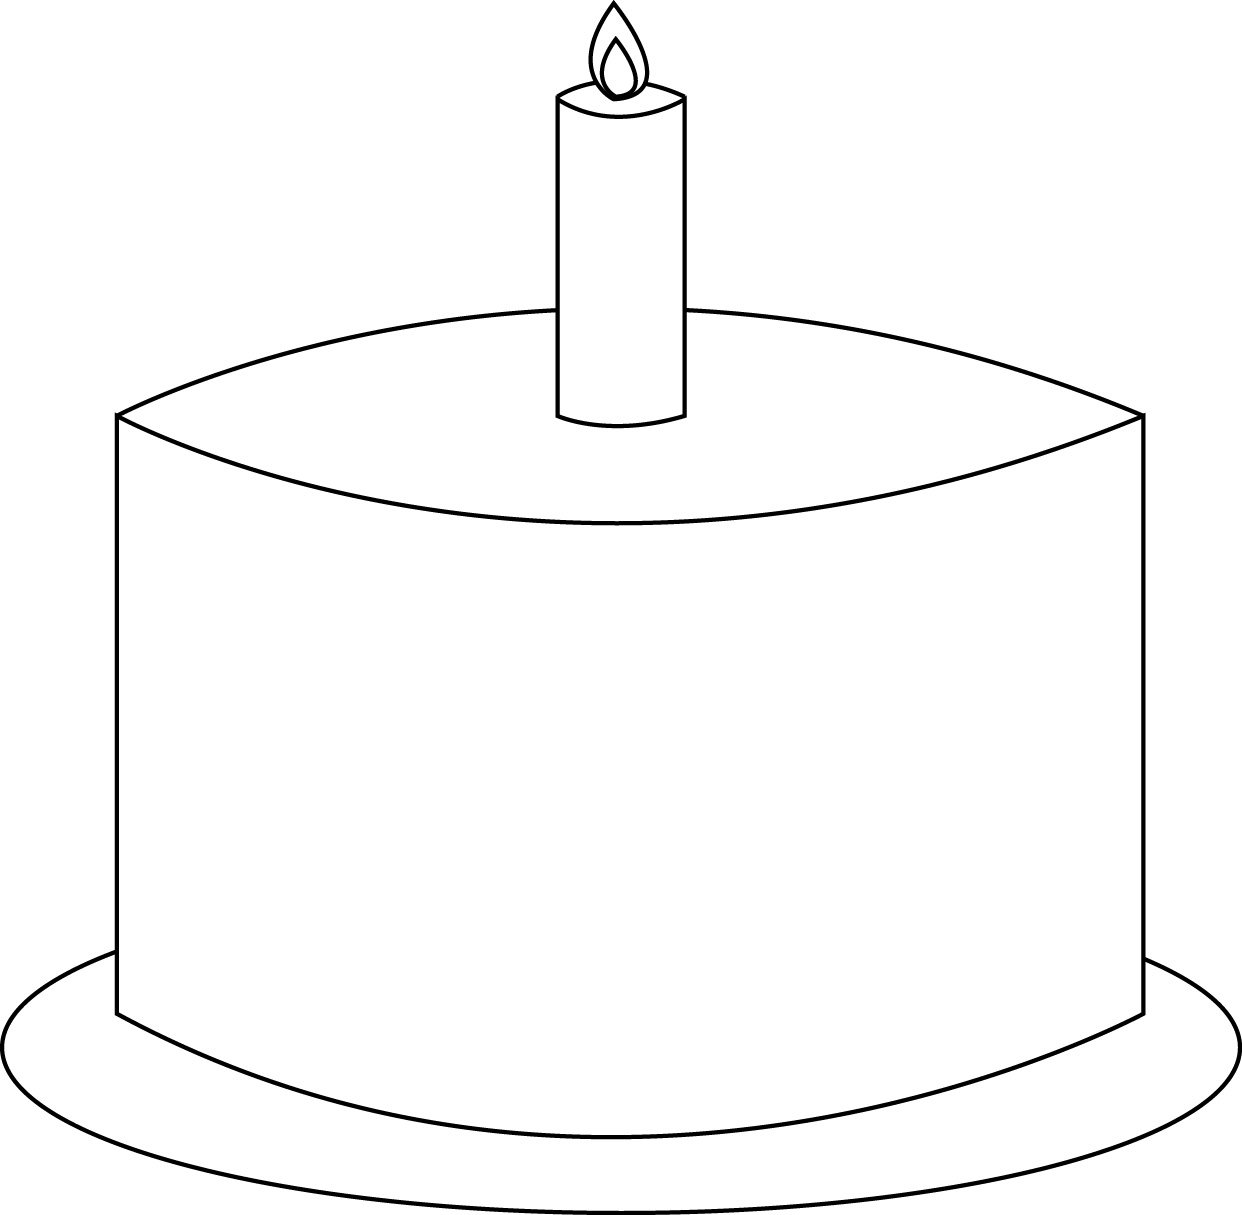 birthday cake drawing template ; birthday-cake-outline-template_90202